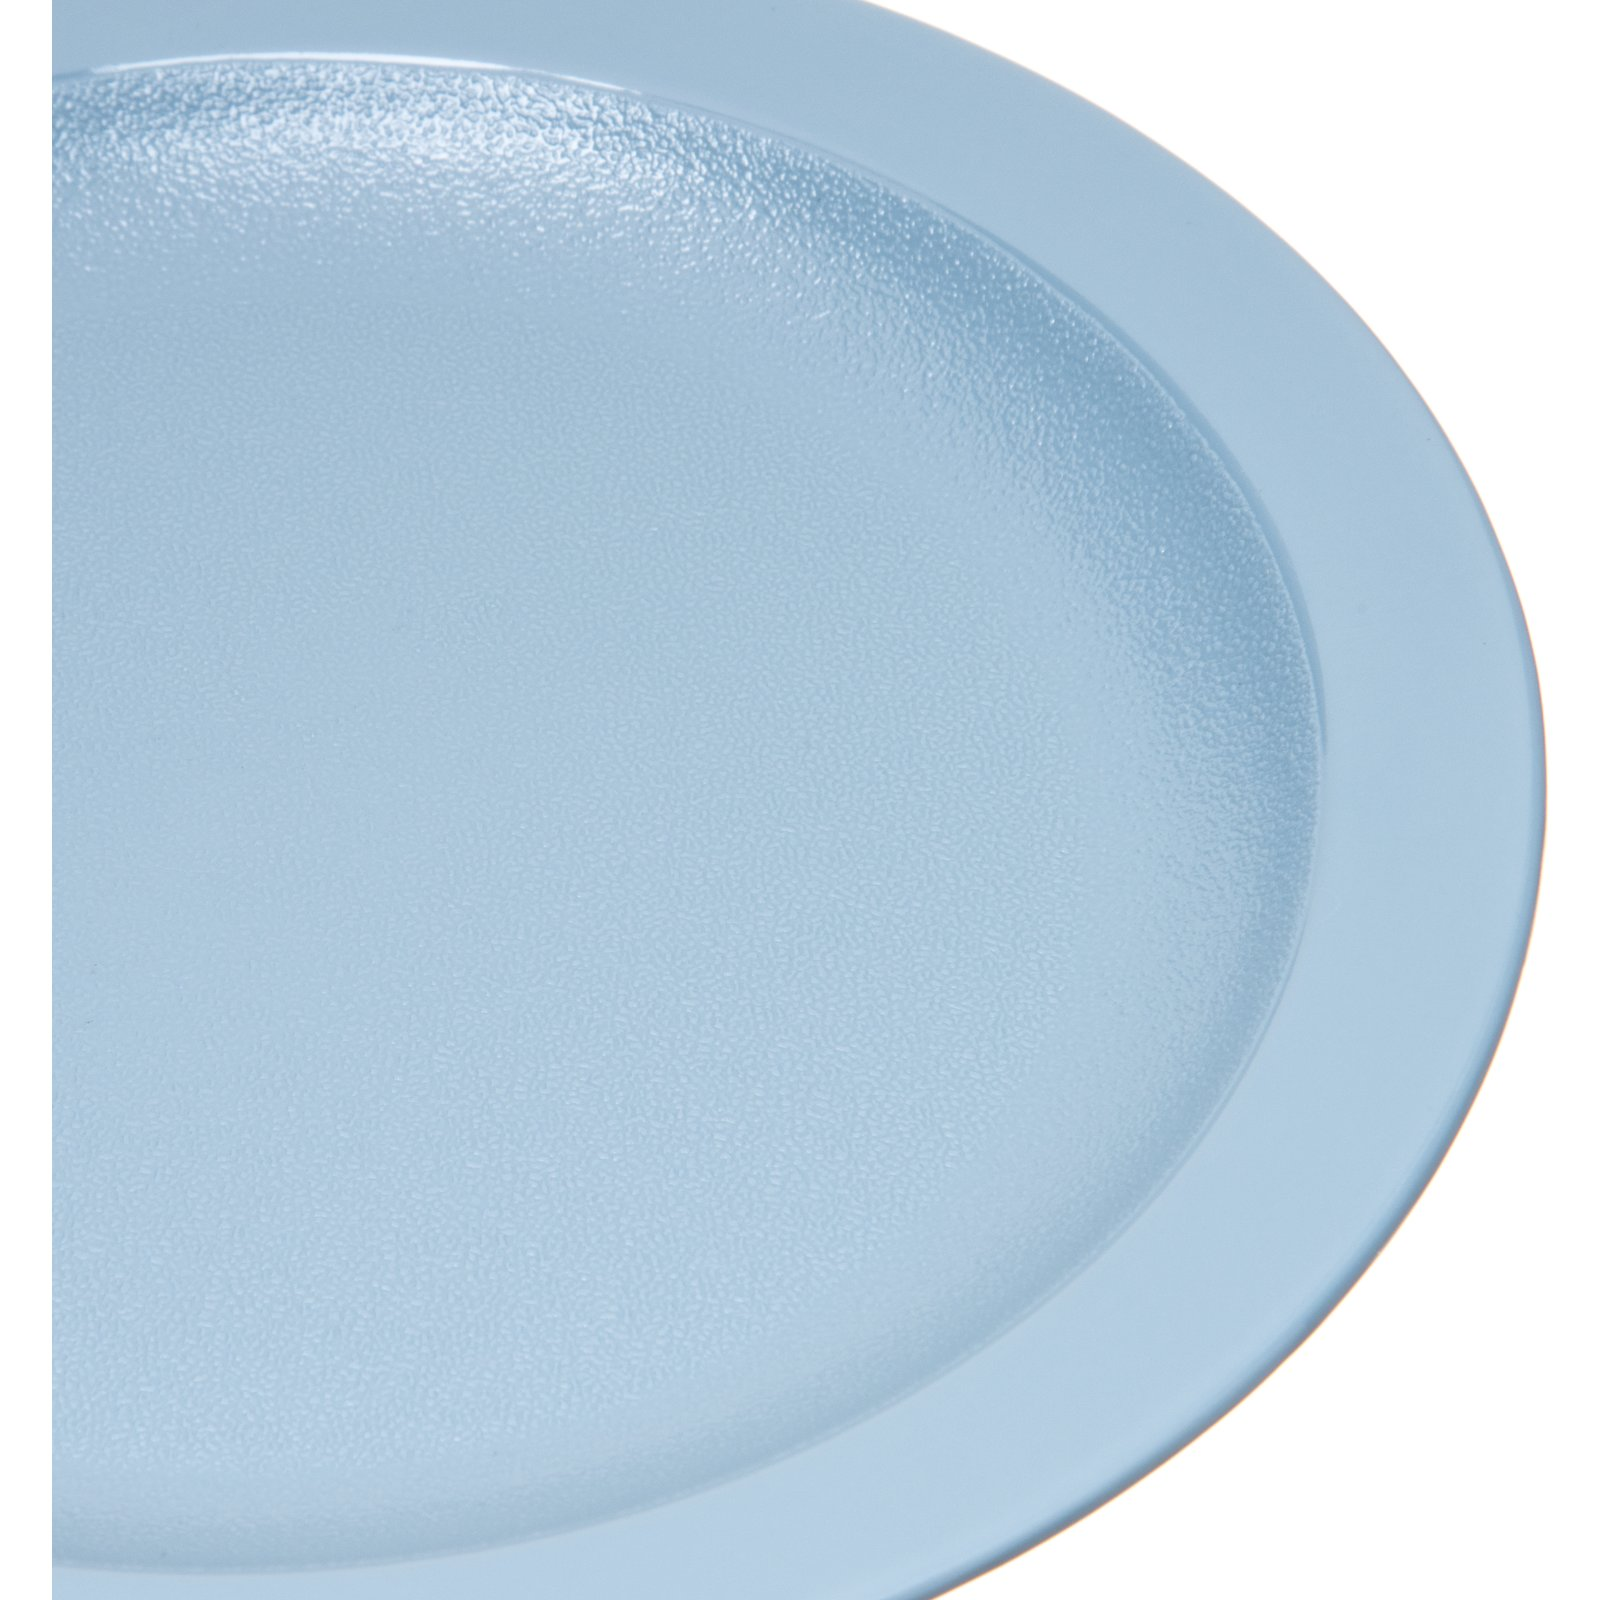 ... PCD20659 - Polycarbonate Narrow Rim Plate 6.5\  - Slate Blue  sc 1 st  Carlisle FoodService Products & PCD20659 - Polycarbonate Narrow Rim Plate 6.5\